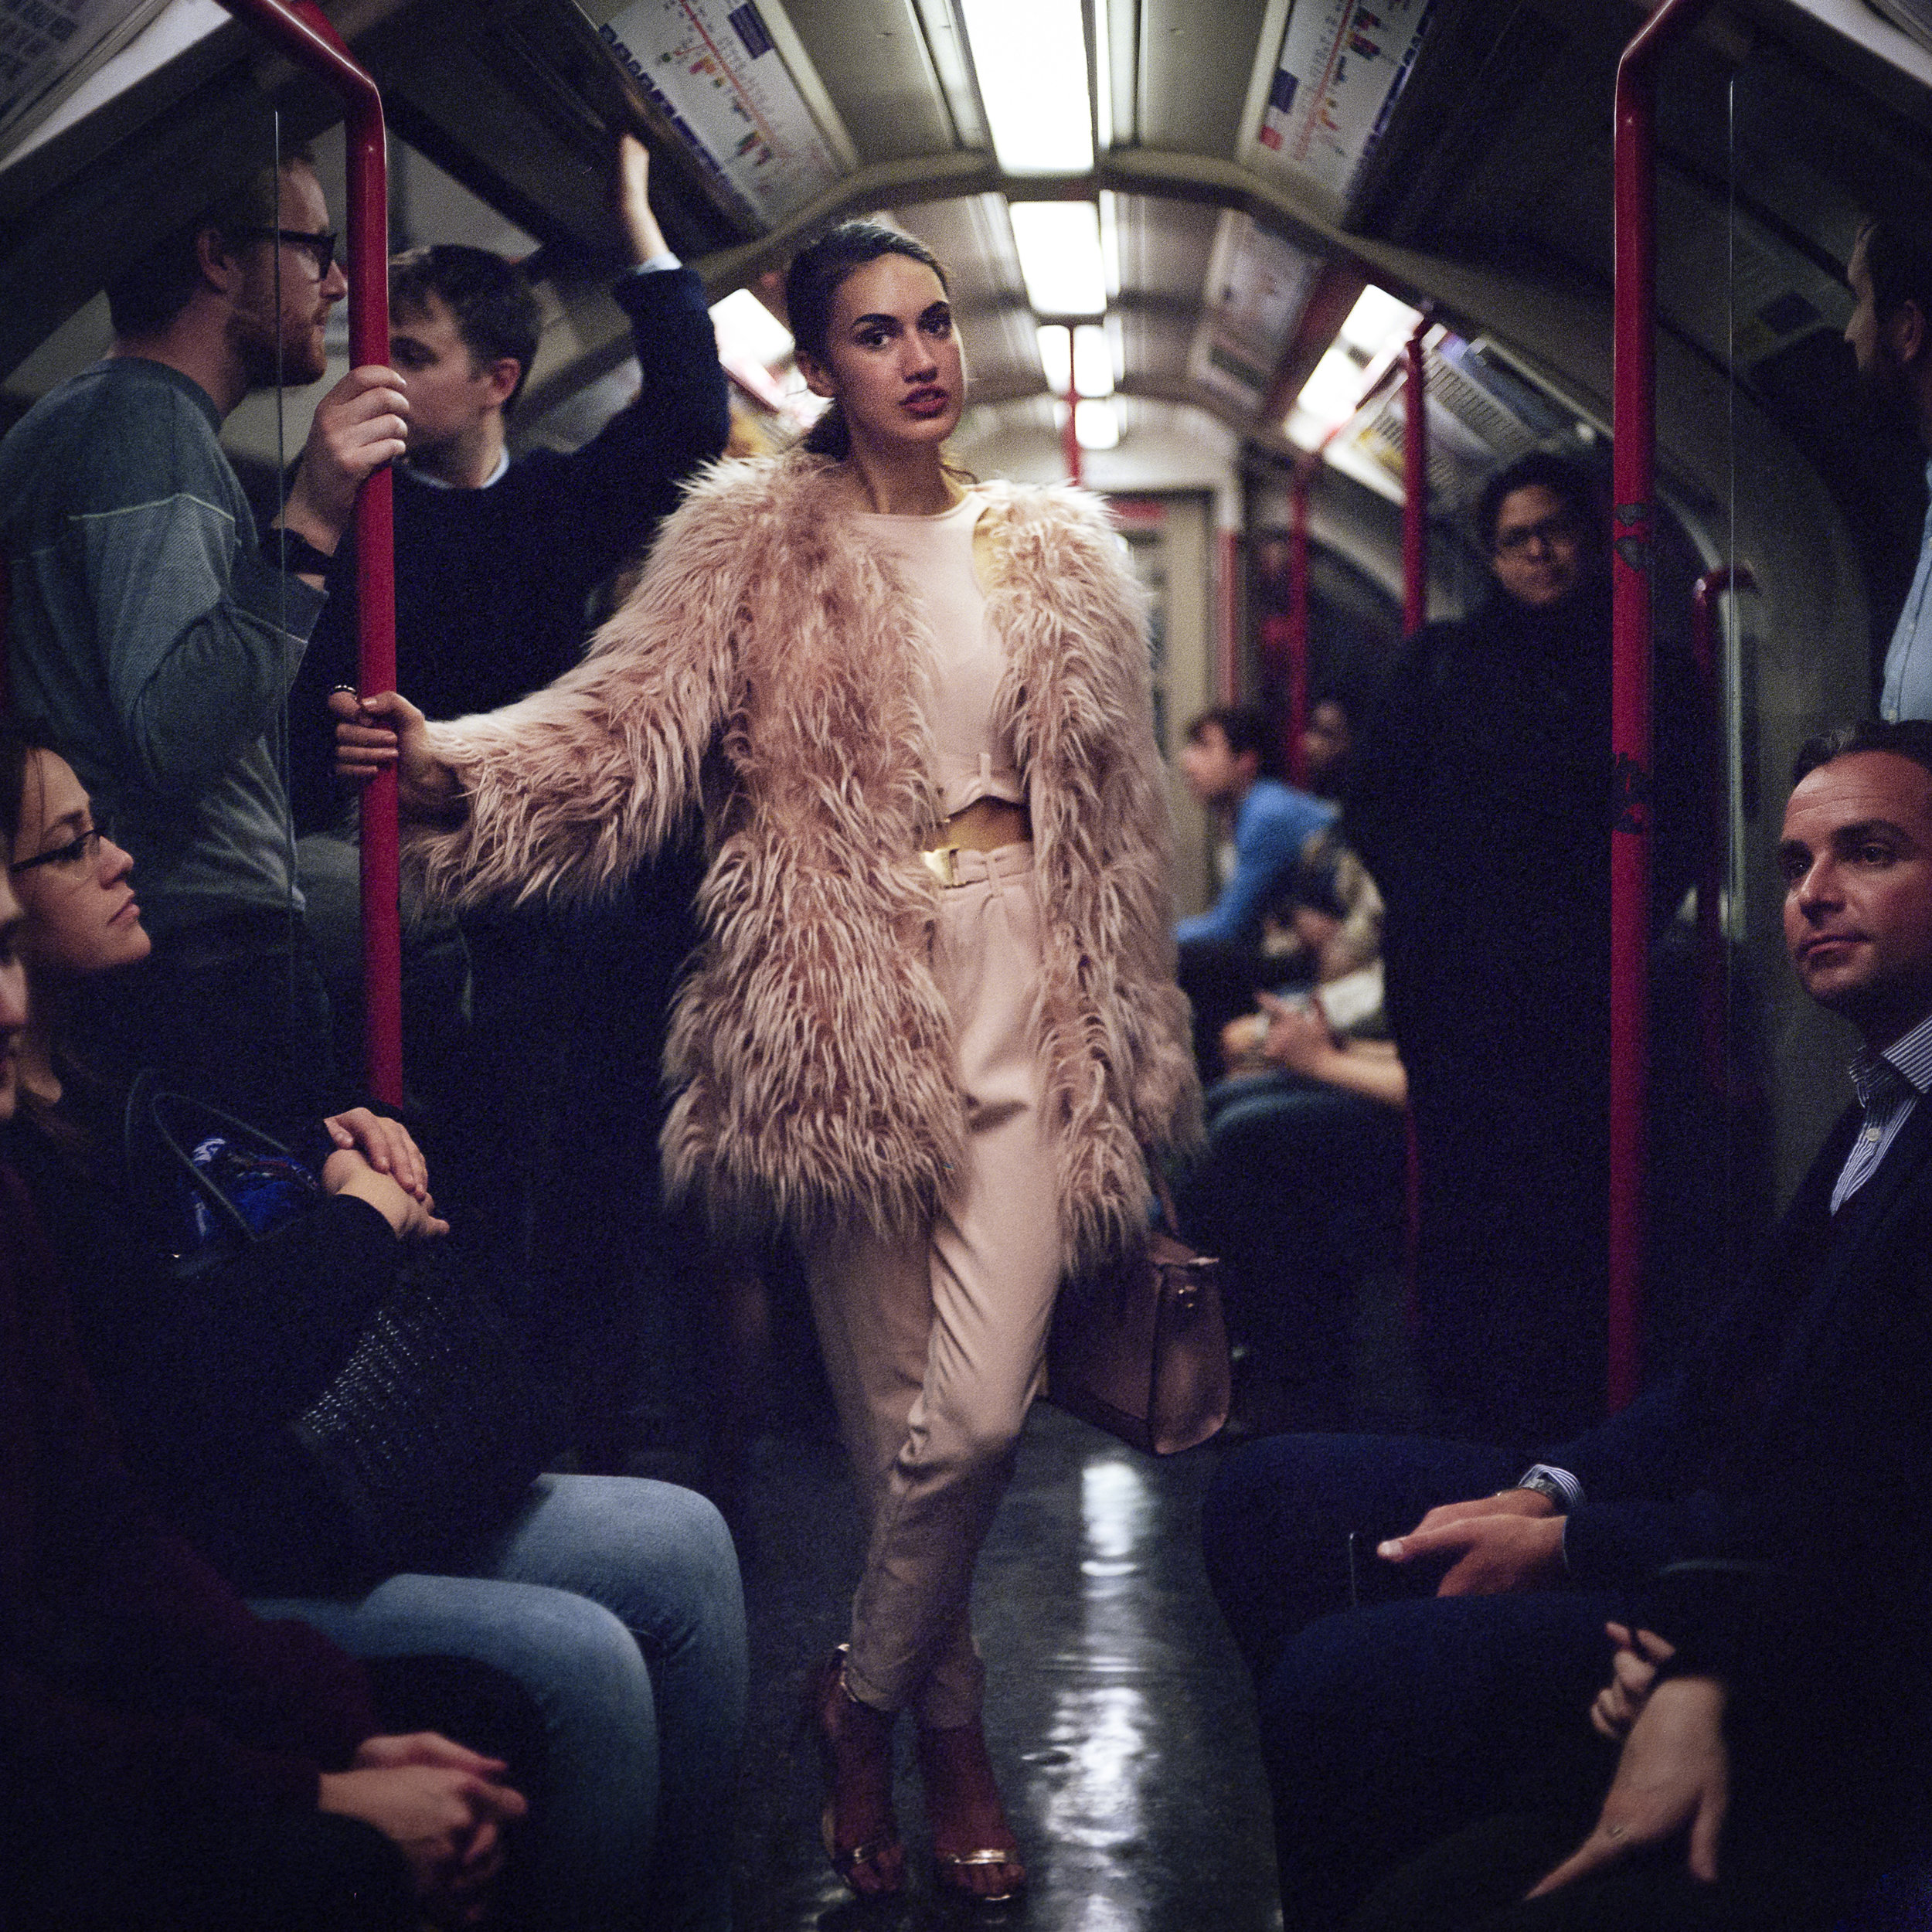 I'm donating a print of this image from my Night Tube series to the Photo Kindness Project